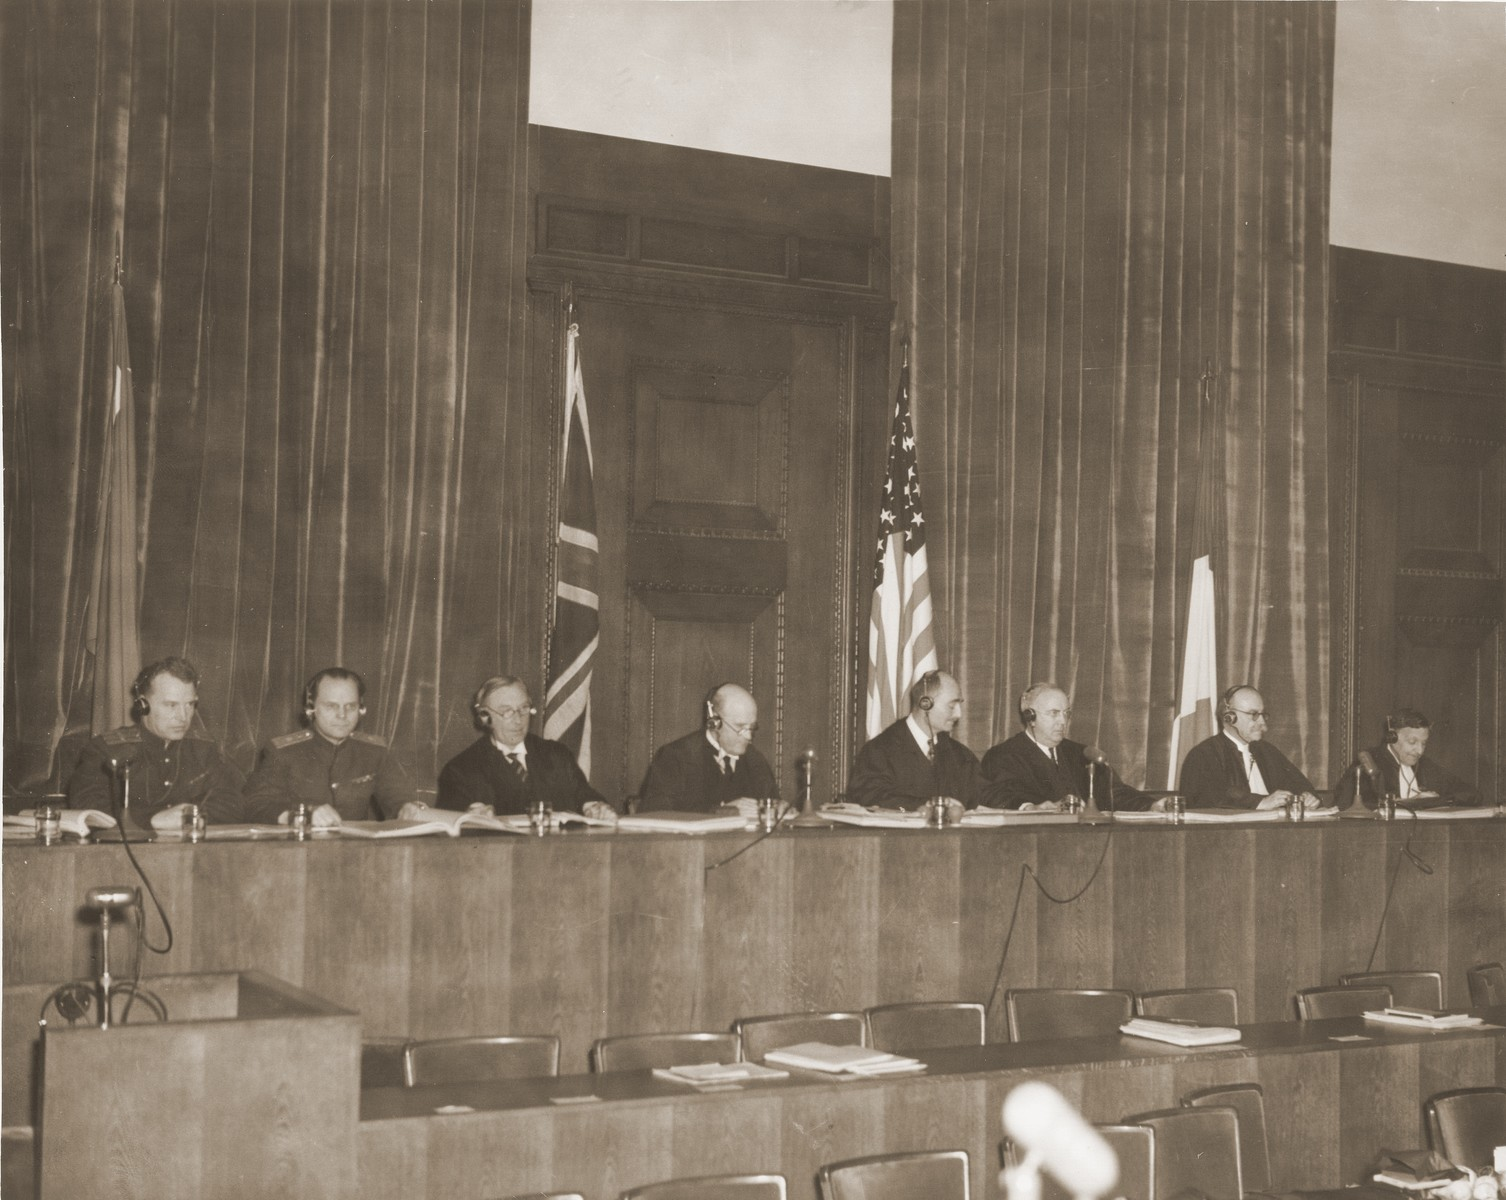 View of the judges' bench at the International Military Tribunal in Nuremberg.    Pictured from left to right are:  Lt. Col. A.F. Volchkov and Maj. Gen. Nikitchenko (USSR); Justice Norman Birkett and Tribunal President Lord Justice Geoffrey Lawrence (Great Britain); Judge Francis Biddle and Judge John J. Parker (U.S.); Prof. Donnedieu de Vabres and Robert Falco (France).